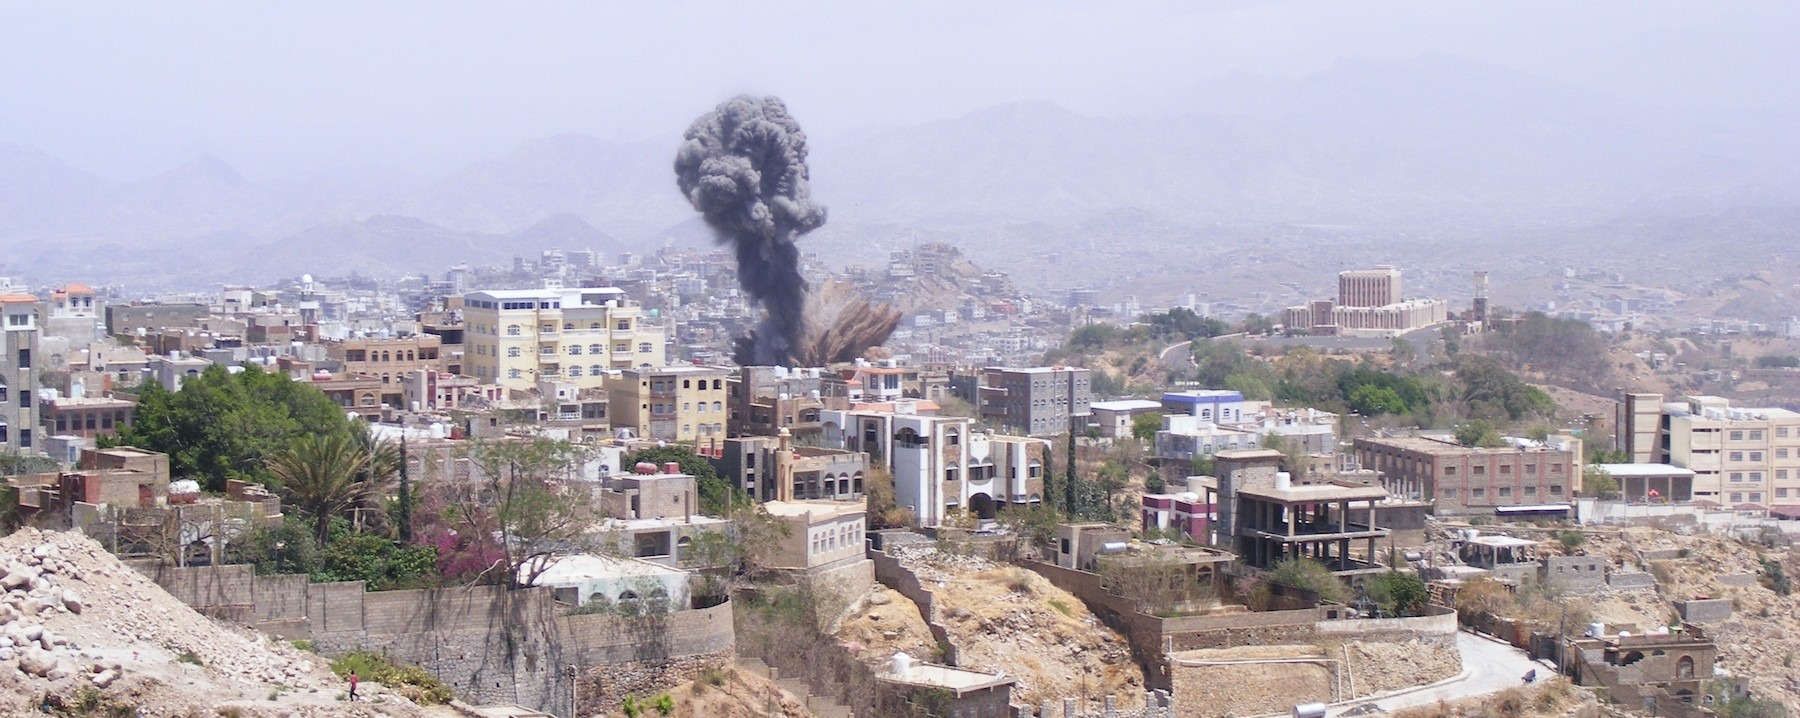 Saudi Airstrikes in Yemen Haven't Stopped — They've Just Reached Halftime